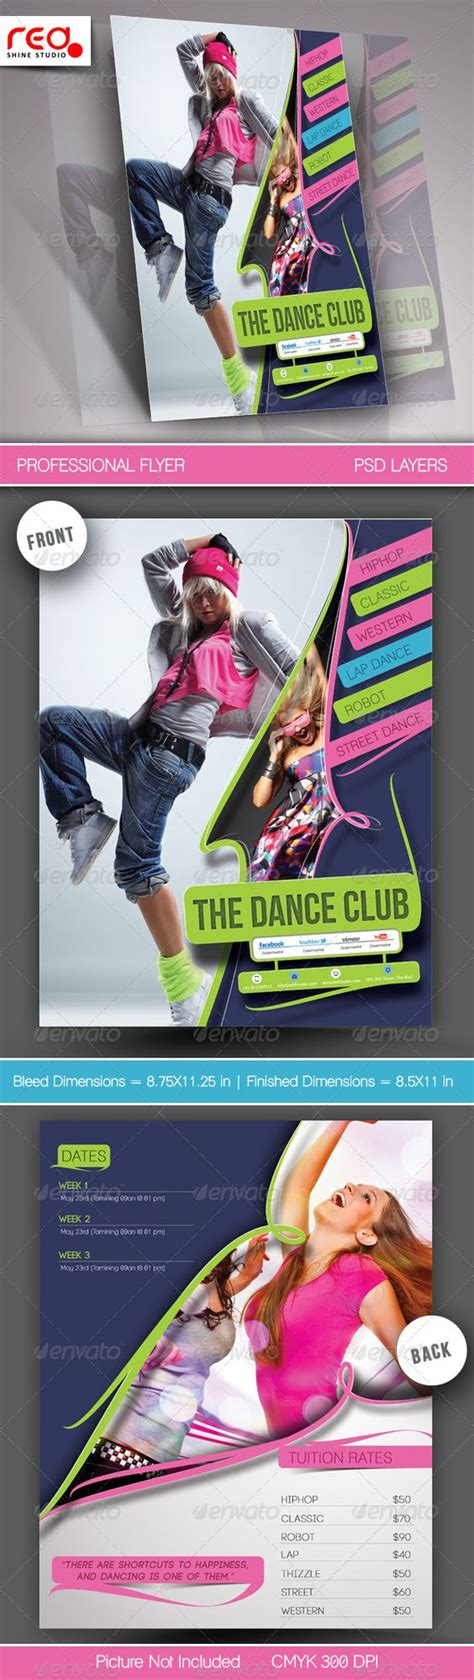 templates for dance flyers dance academy flyer poster template 2 texts the